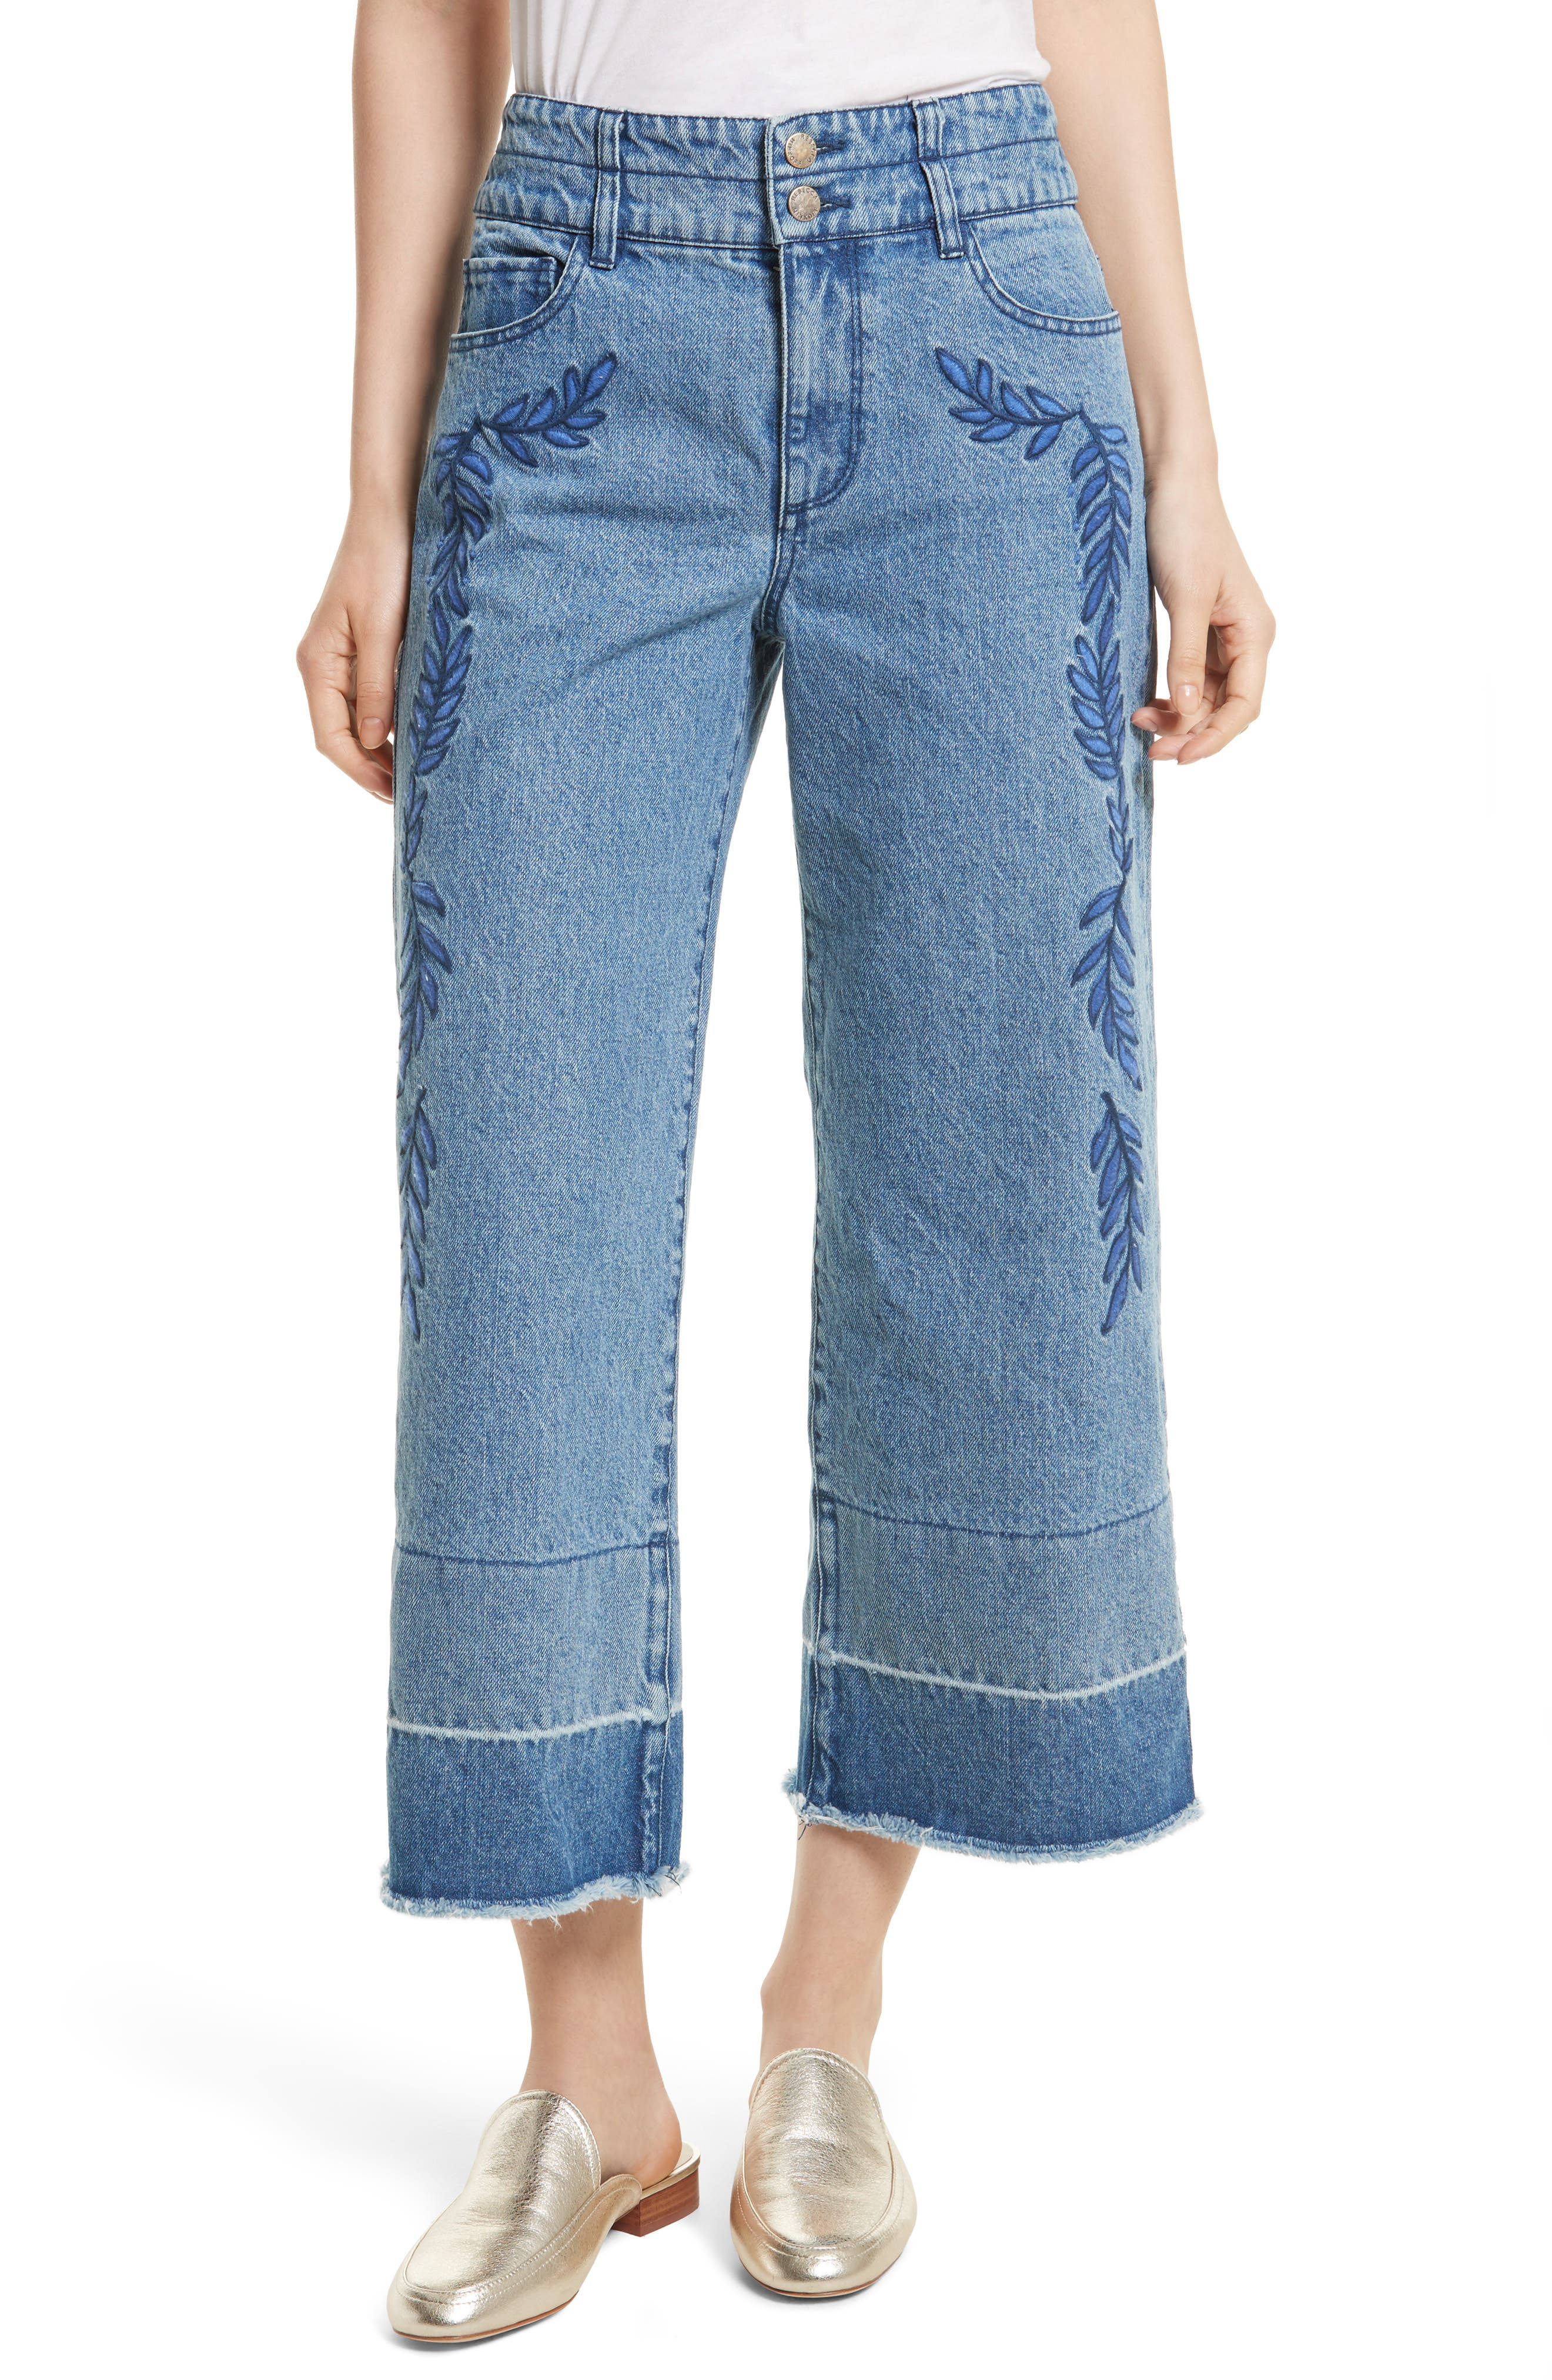 Starlight High Waist Crop Wide Leg Jeans,                         Main,                         color, Midwash